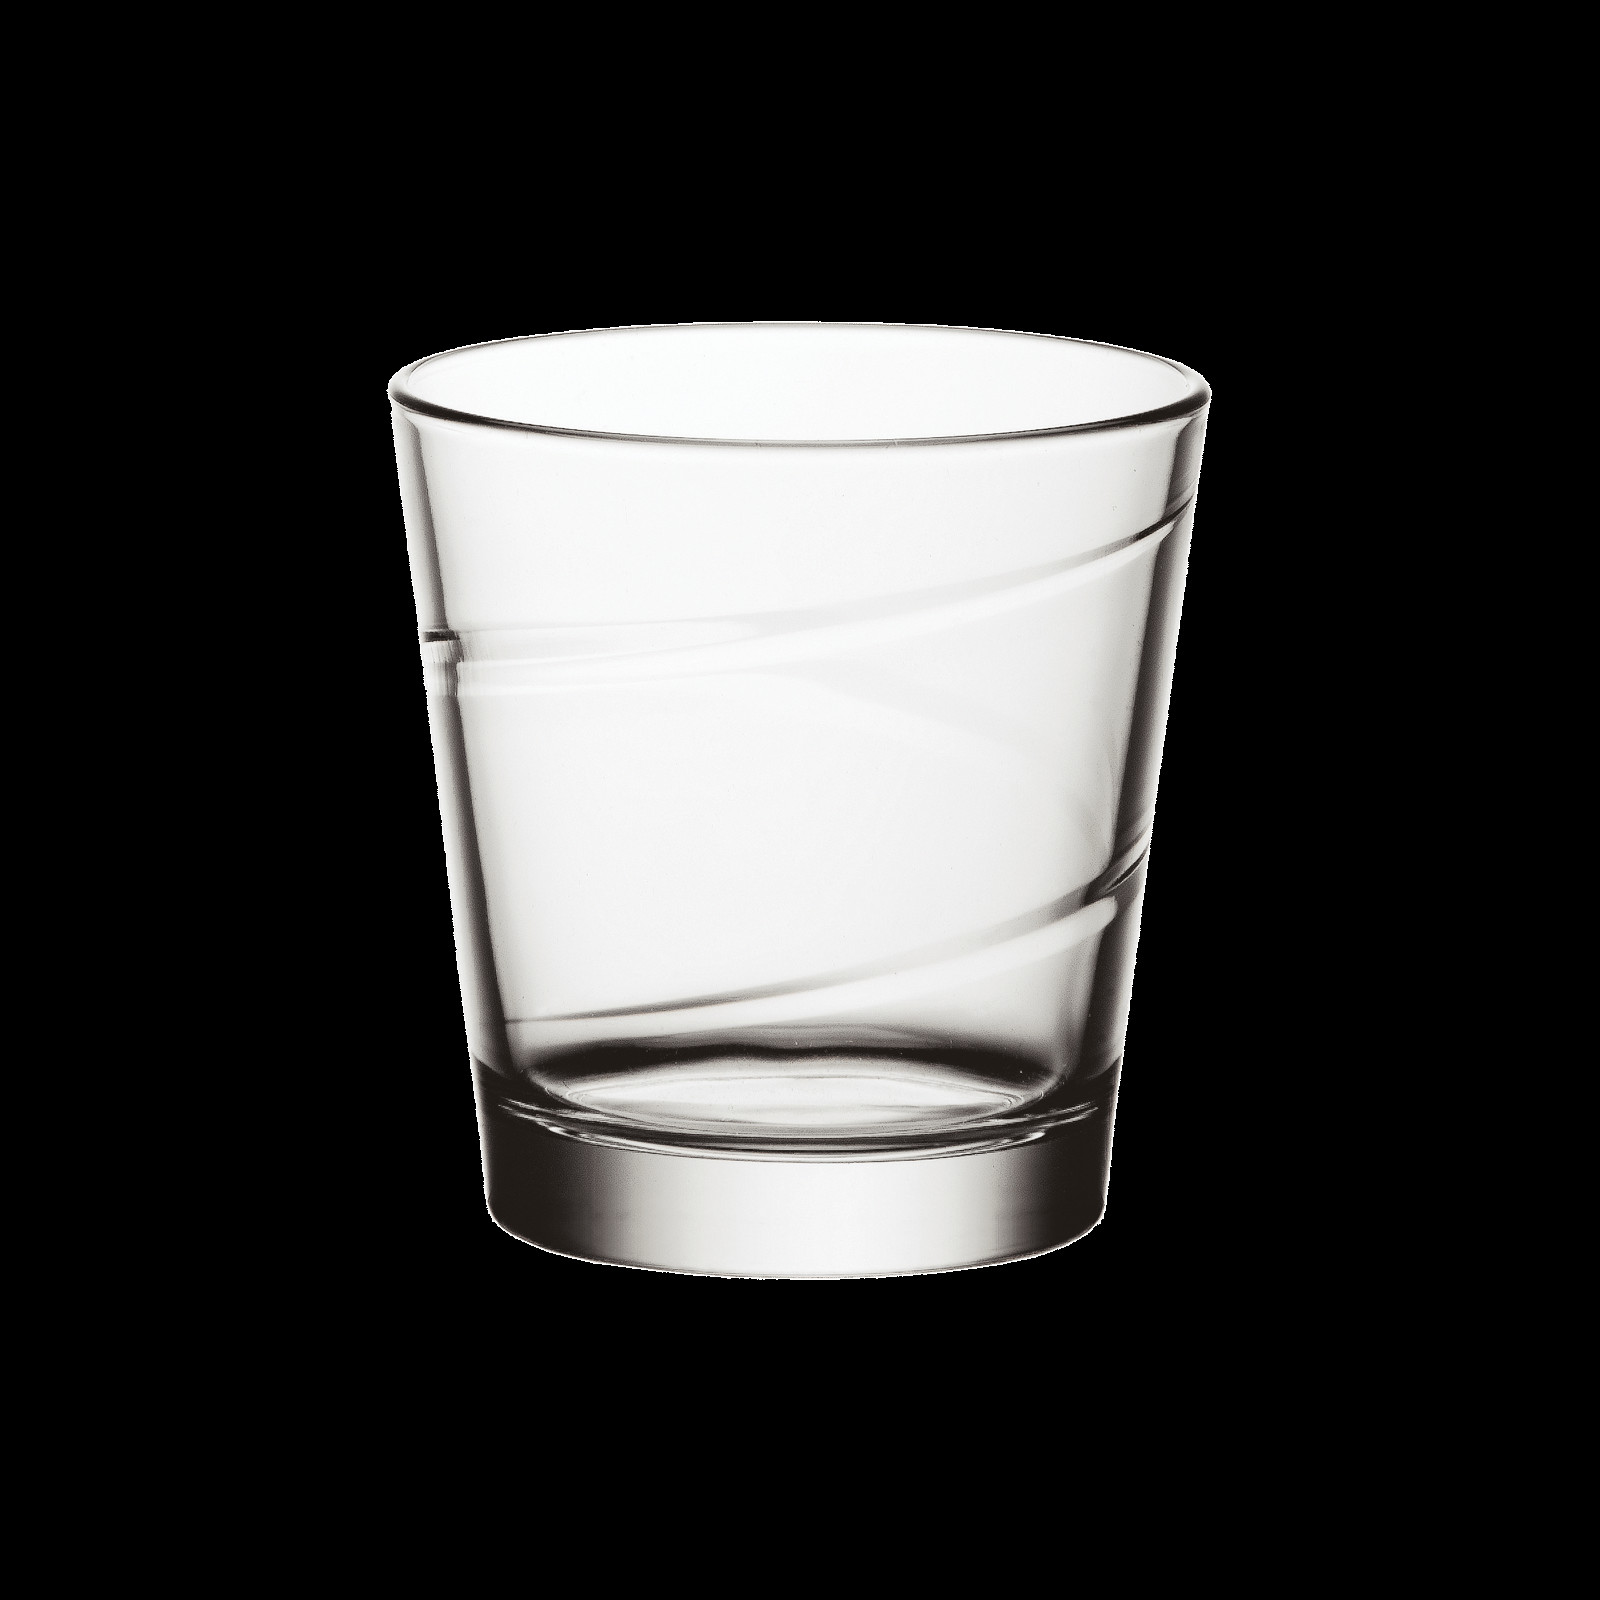 18 Recommended Thin Rectangle Glass Vase 2021 free download thin rectangle glass vase of archivi products bormioli rocco regarding water glass archimede